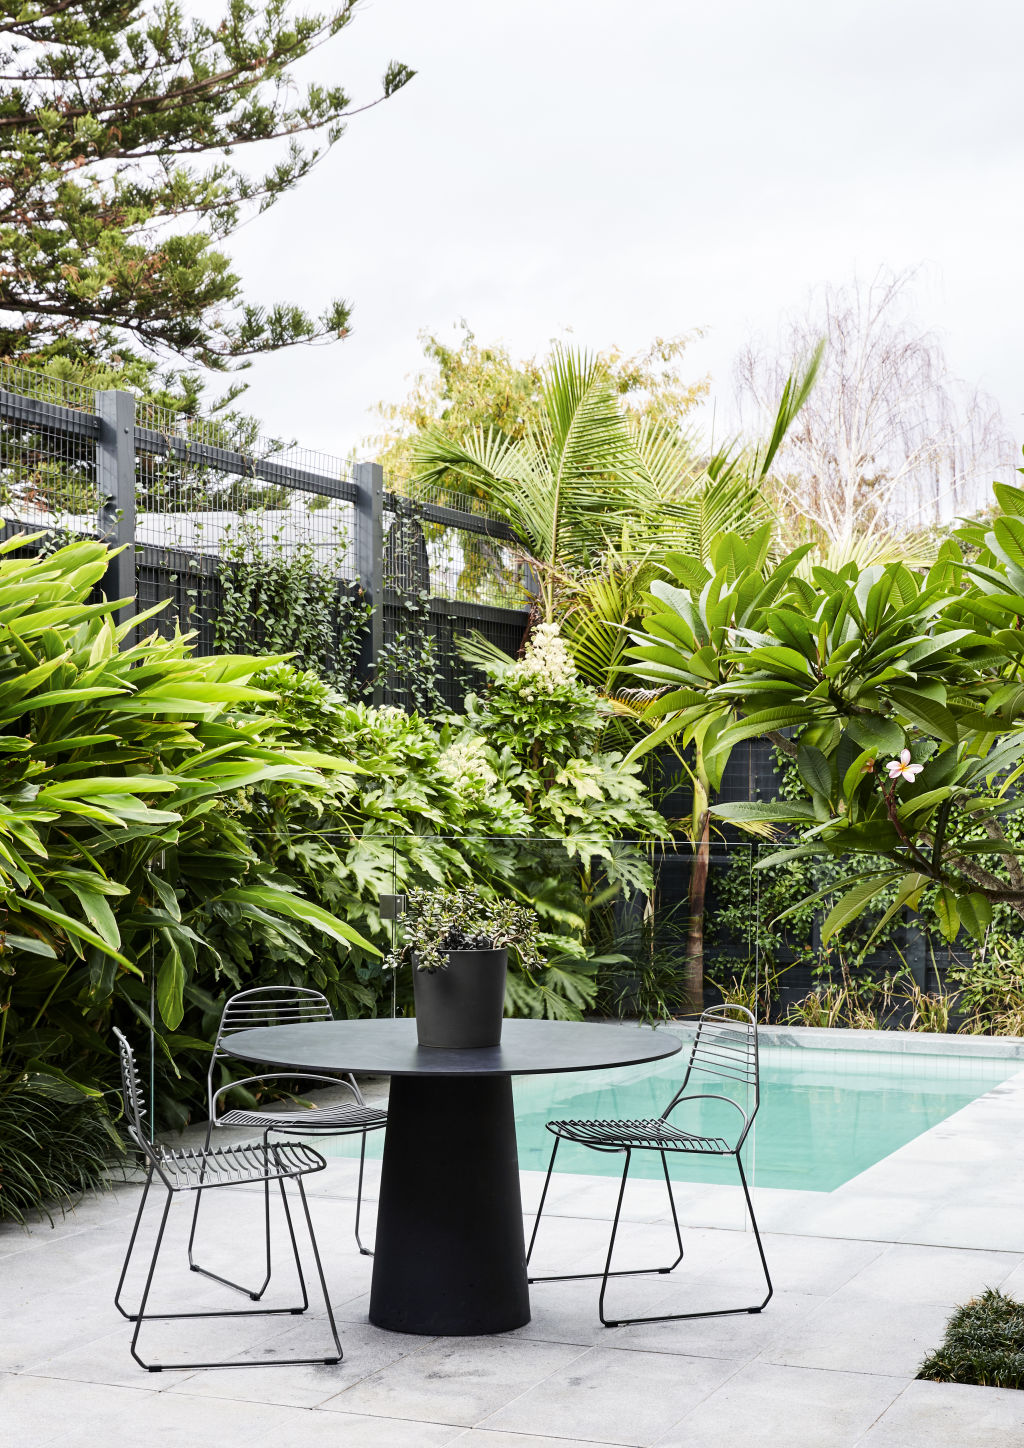 Frangipani tree, 'Yes you can grow them in Melbourne!' says Cara. Moooi Container outside table. Tait outdoor chairs. Landscape design by Ric Day. Styling: Annie Portelli.